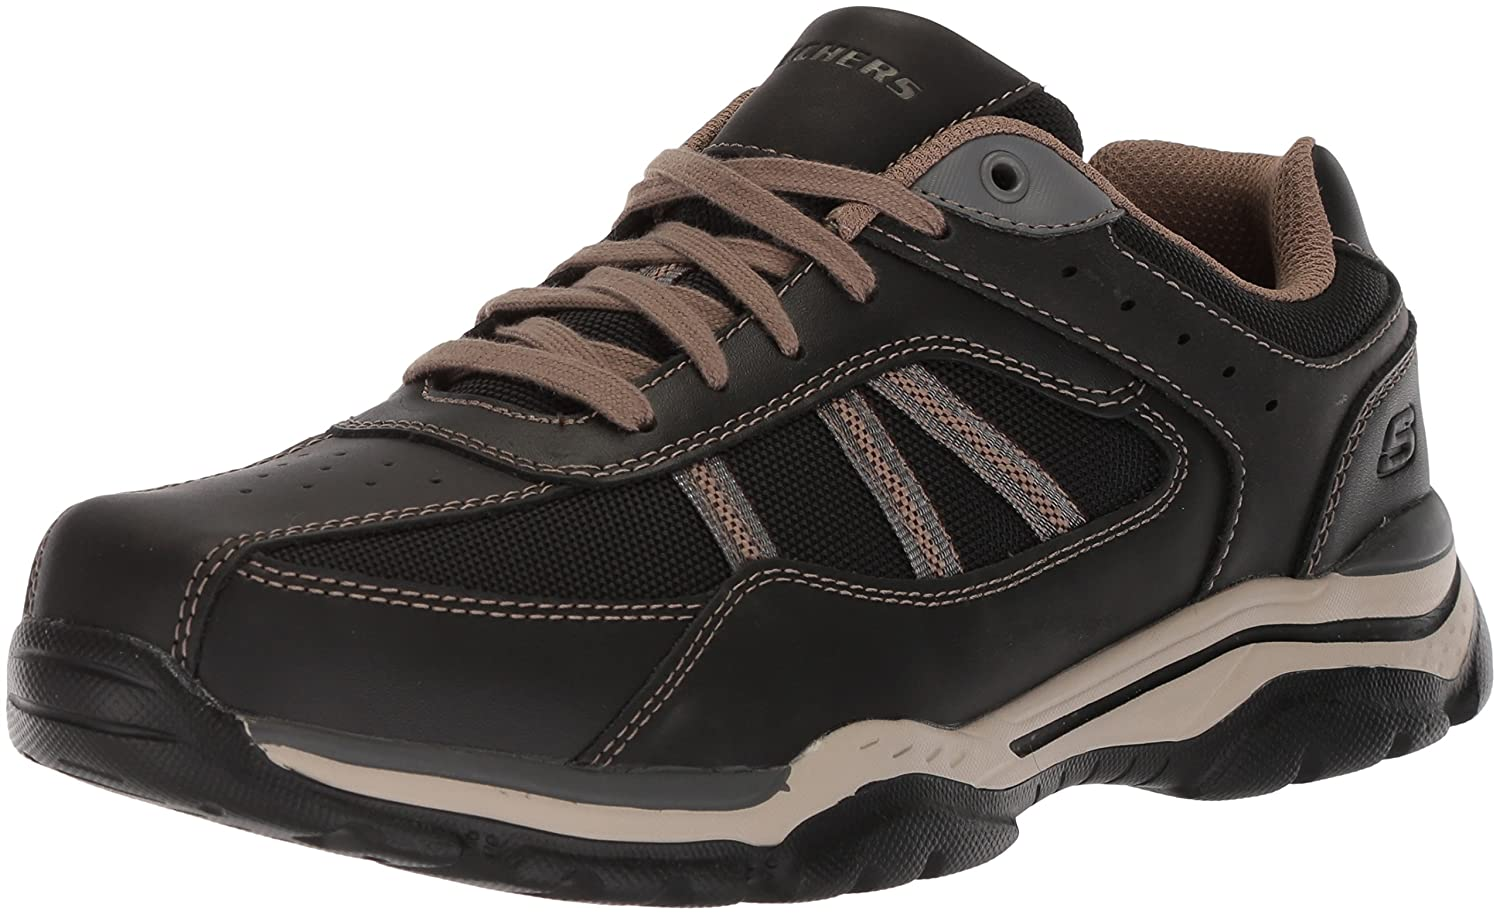 0be31af9354 Skechers65417 - Rovato-Soloven